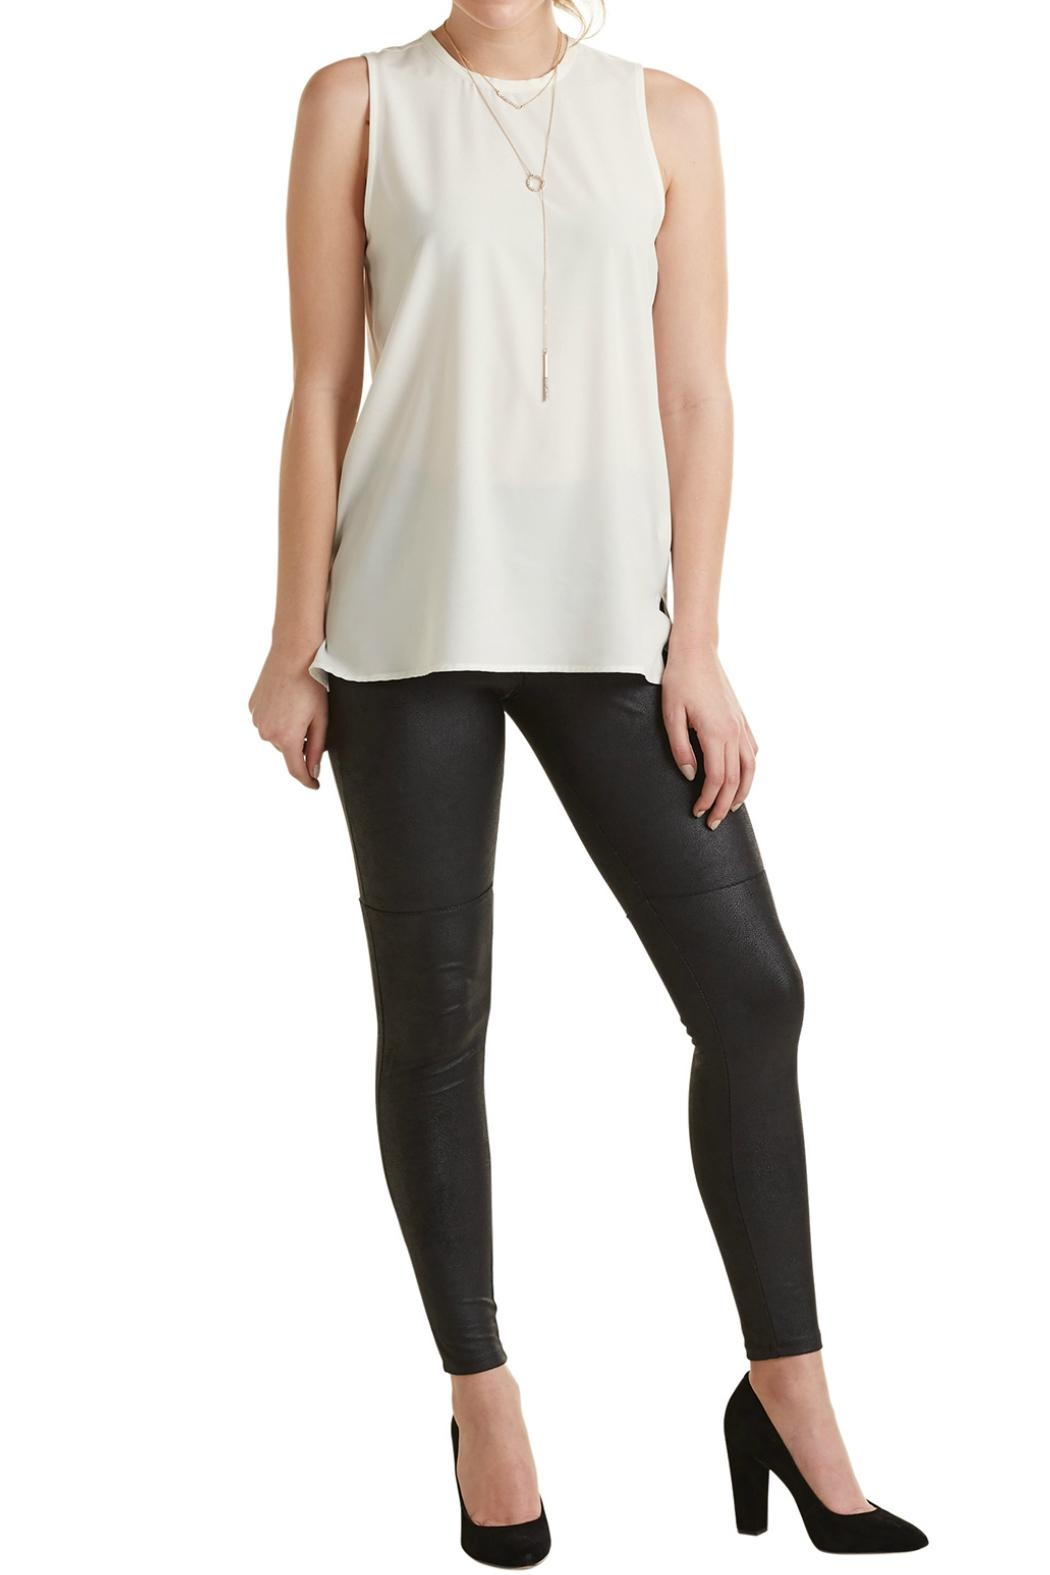 Mud Pie Sleeveless Layering Top - Front Cropped Image